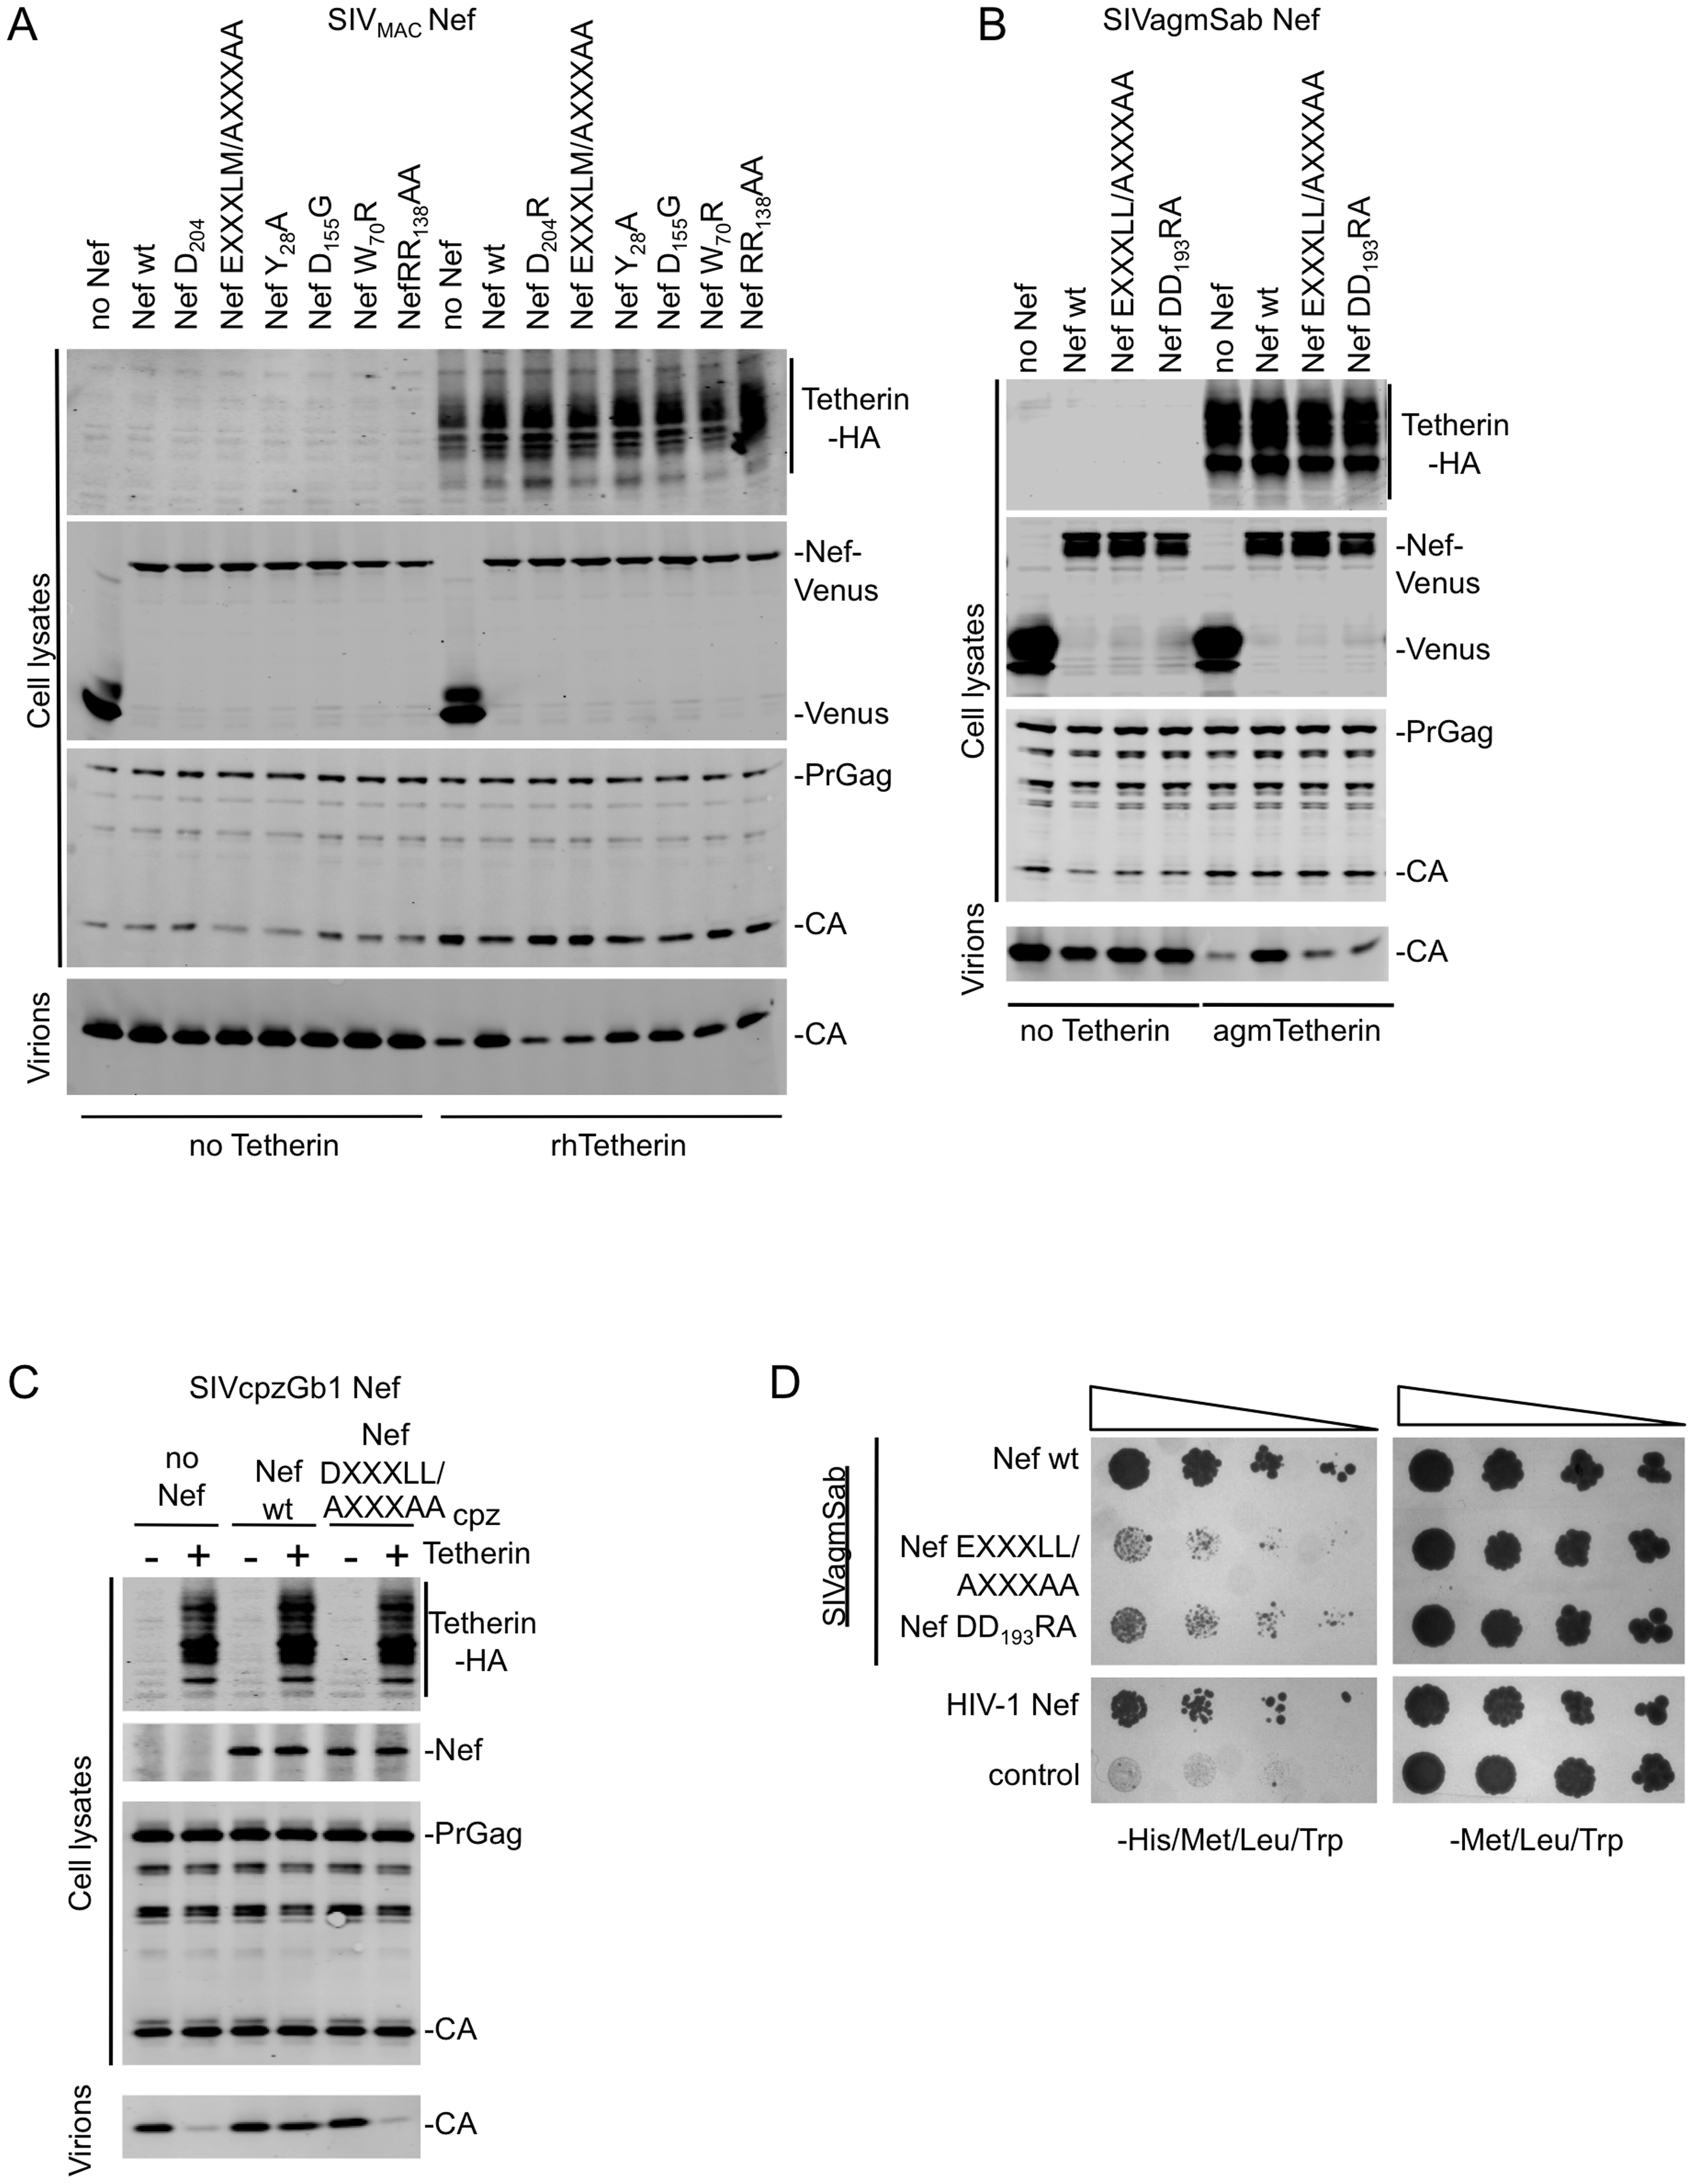 Mutation of Nef residues required for AP-2 binding abolish Tetherin antagonism.